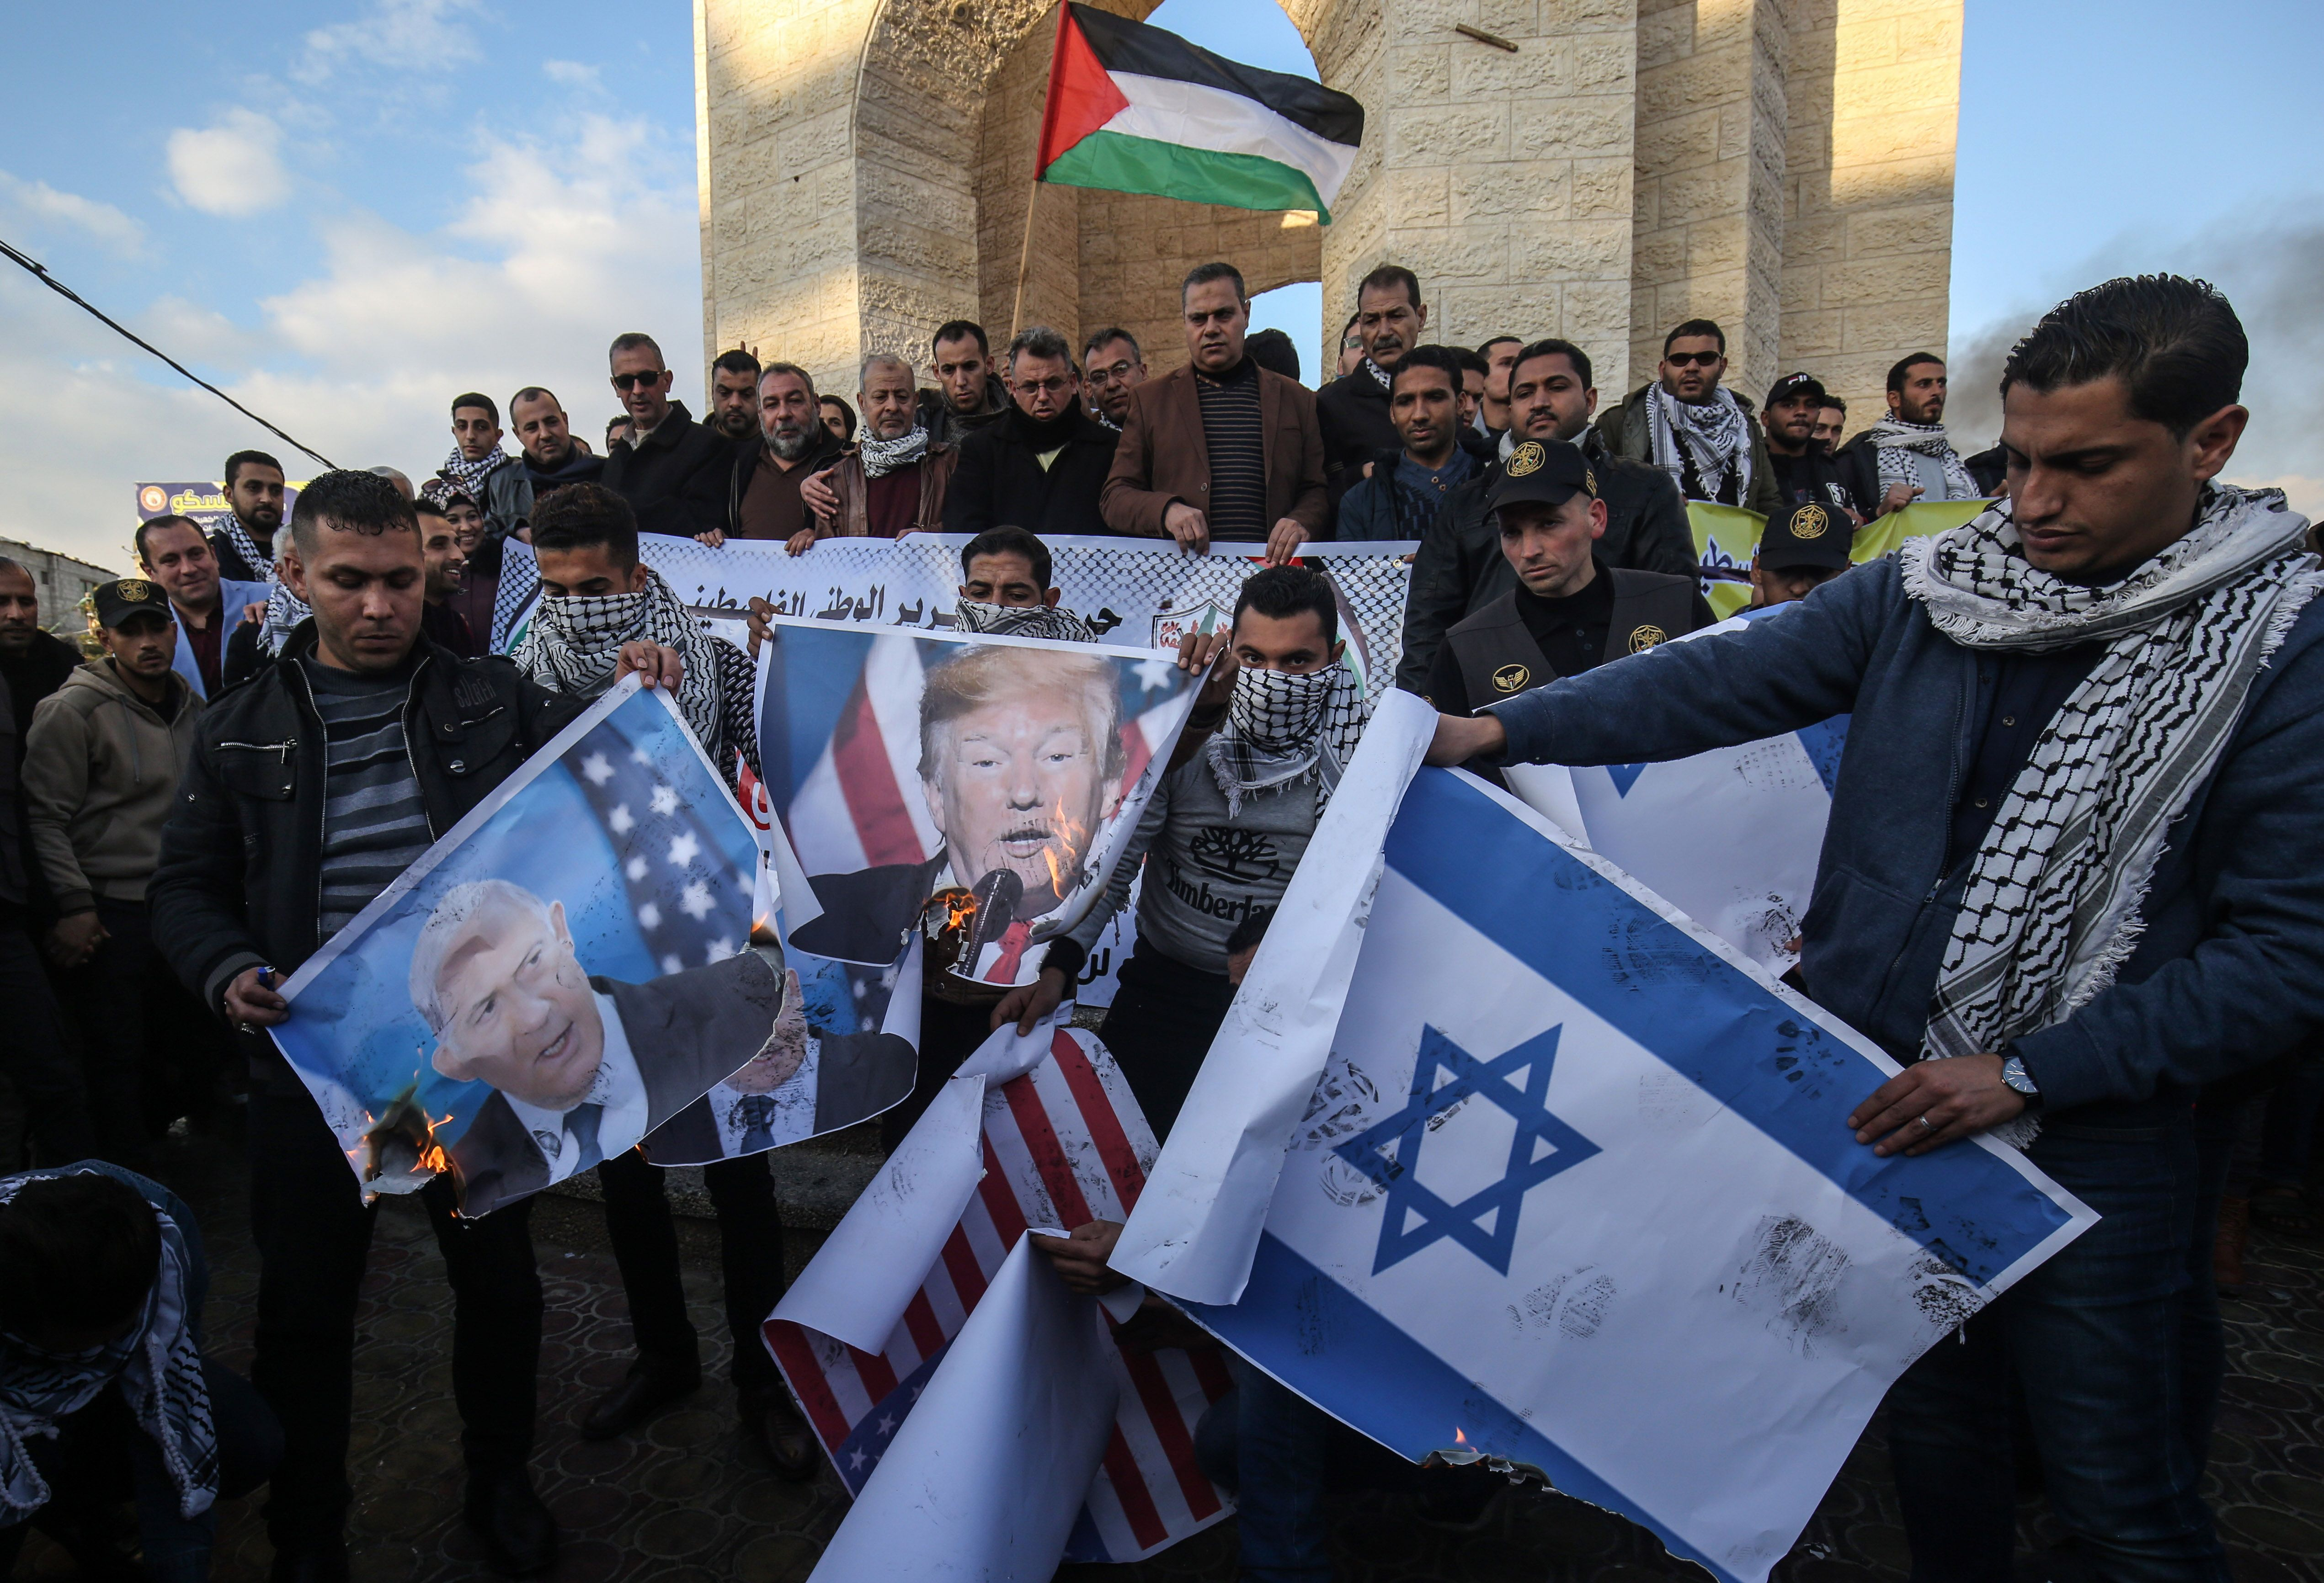 Palestinian demonstrators burn images of US President Donald Trump (C) as they protest against a US brokered Middle East peace plan, in Rafah in the southern Gaza Strip, on January 29, 2020.